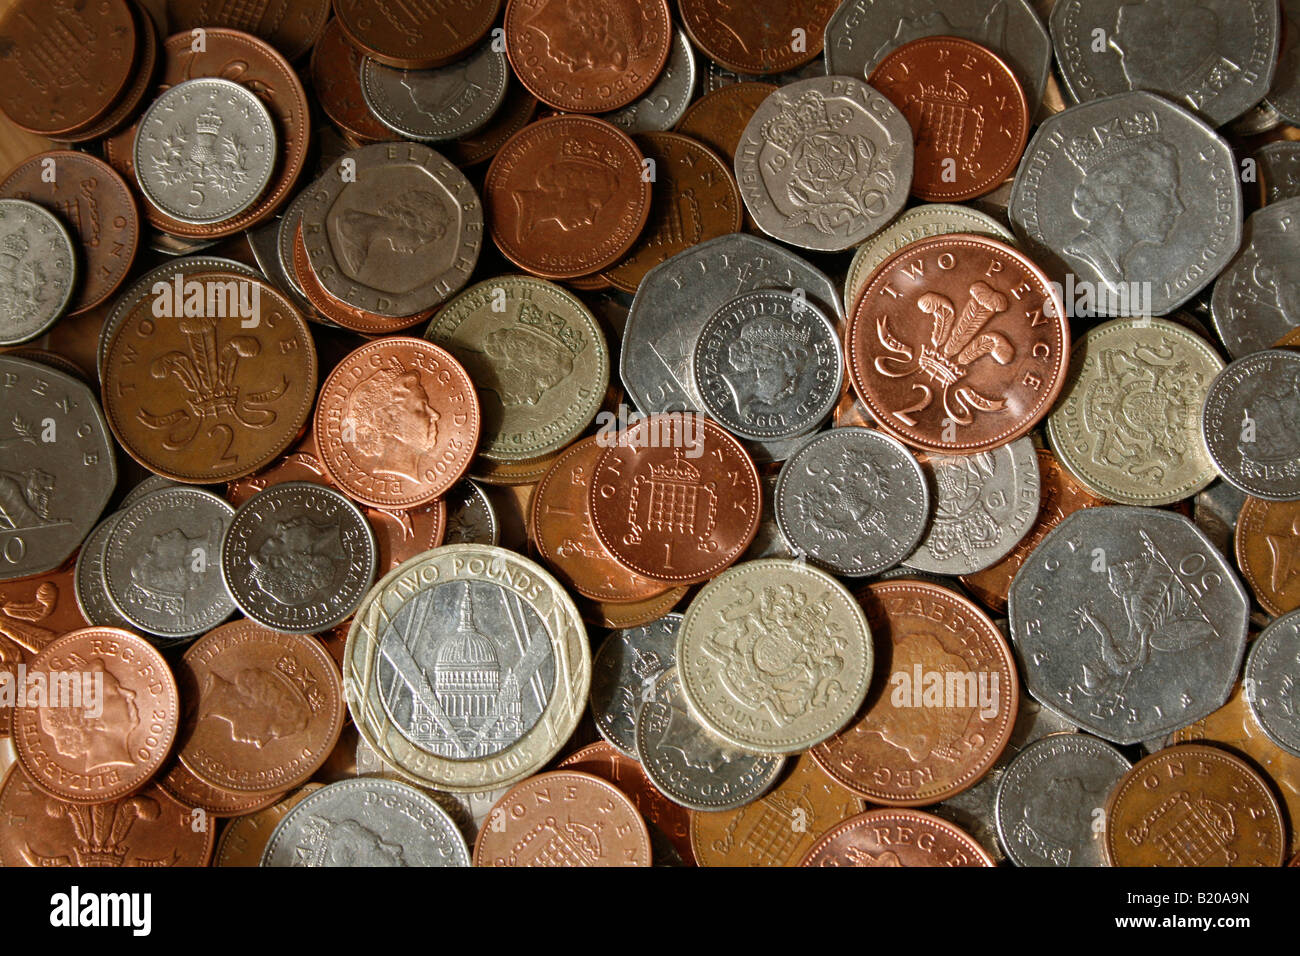 All the current UK coins in common usage are laid out, copper and silver coins, £1 & £2 coins. - Stock Image